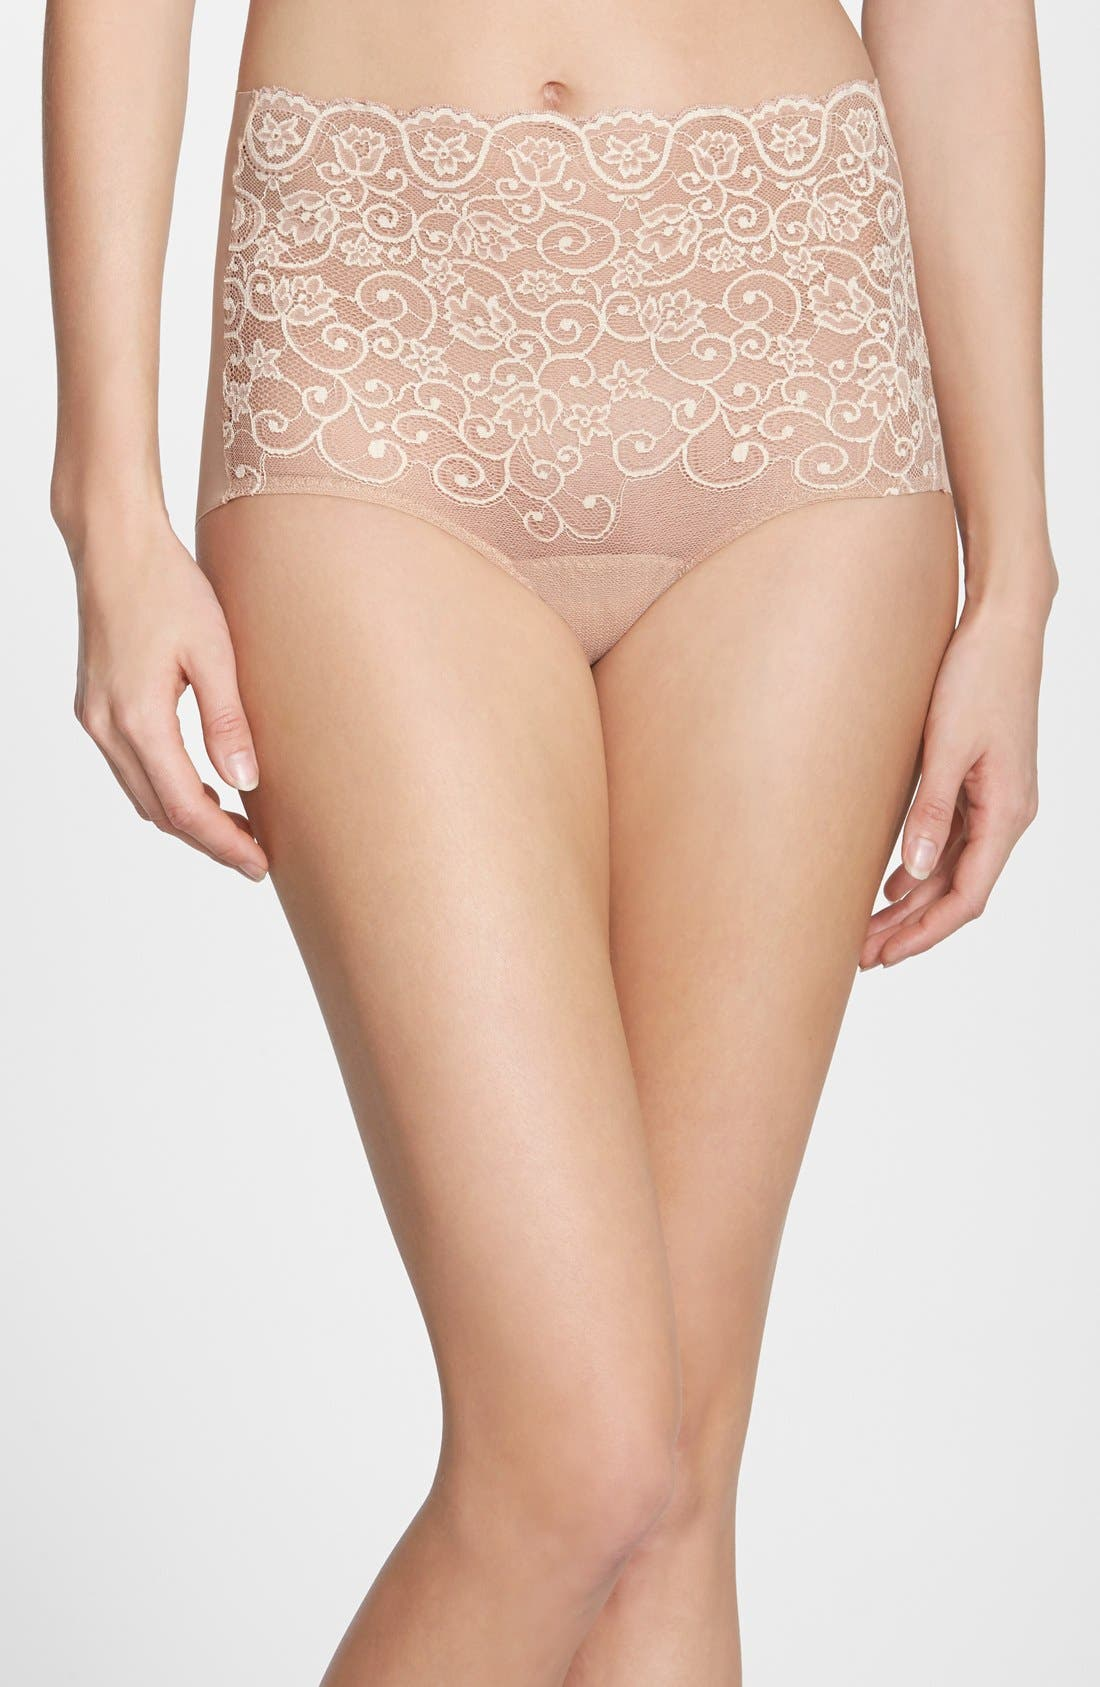 'Double Take' Lace Front High Rise Panties,                         Main,                         color,